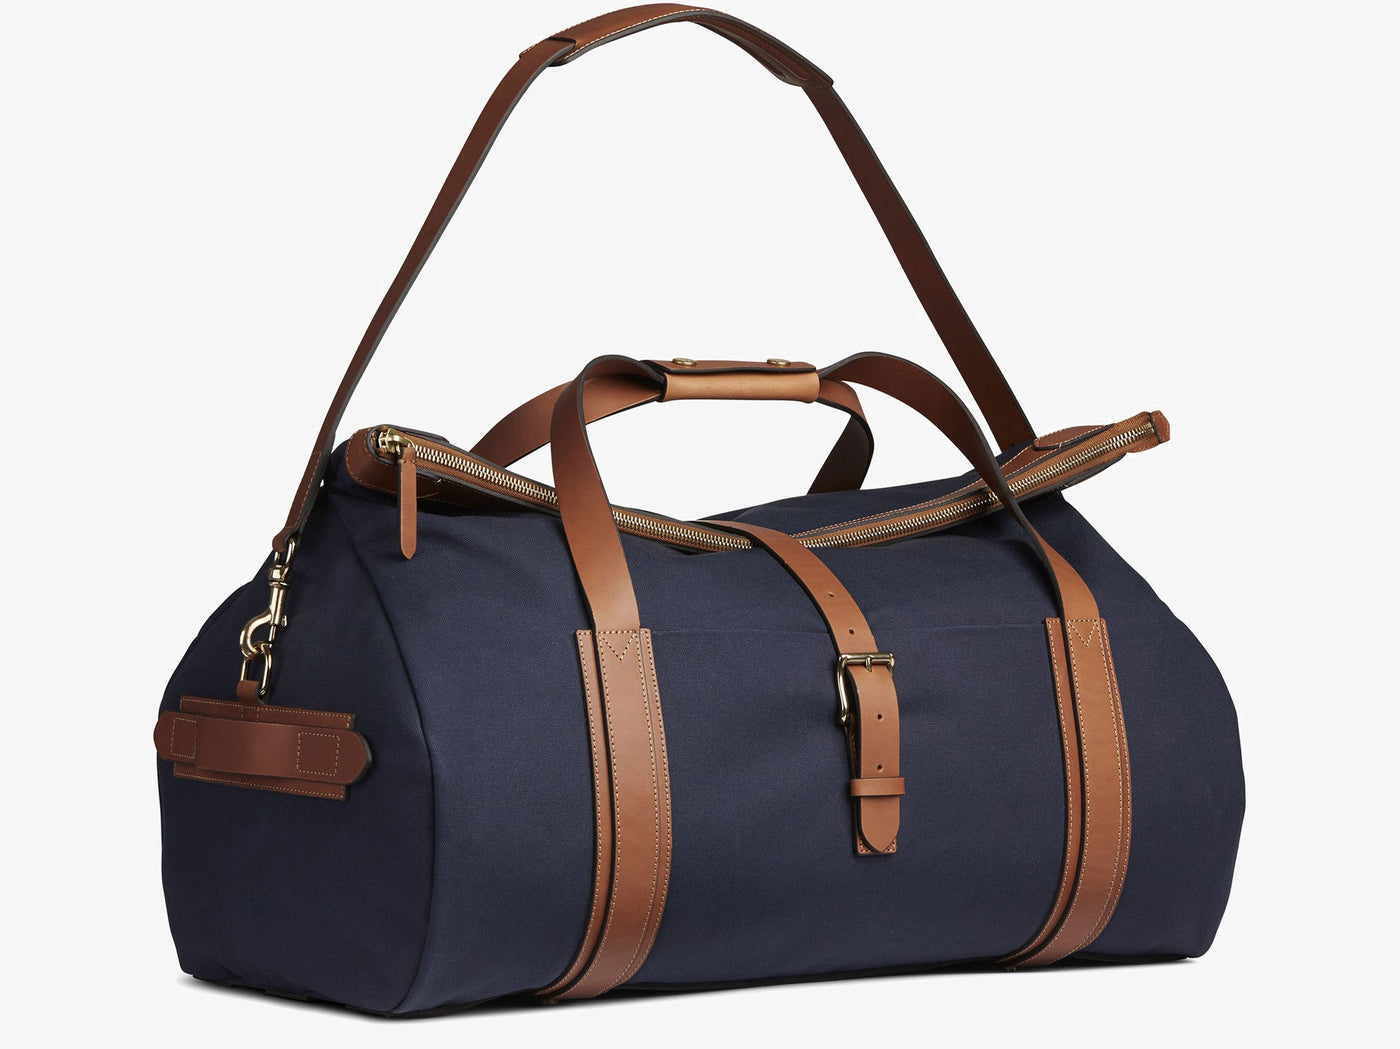 M/S Explorer - Midnight blue/Cuoio -  Travel bag - Mismo